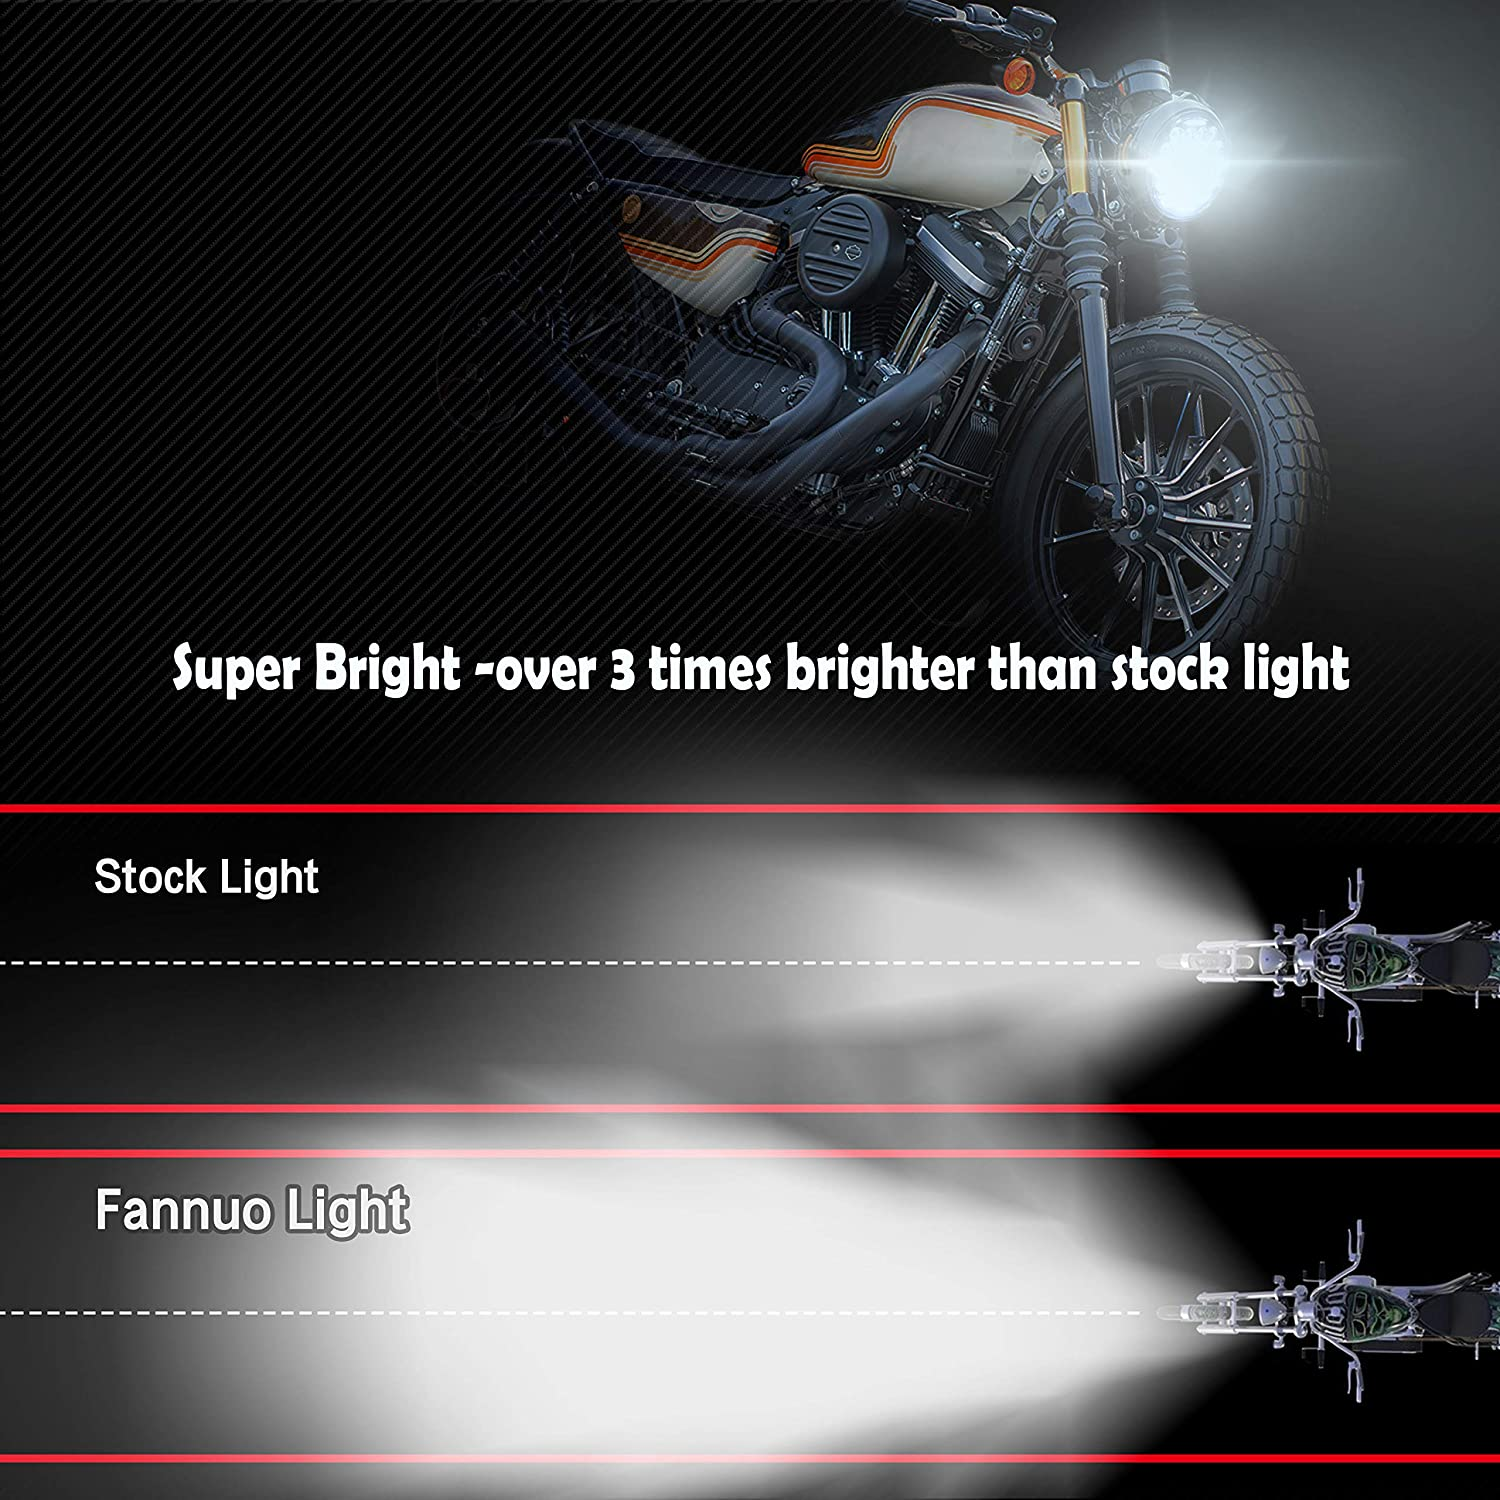 Harley Headlight 5-3//4 5.75Inch Headlight with White DRL High Low Beam Projector Headlight for Harley Davidson Iron 883 Sportster Dyna Triple Wide Glide Low Rider Motorcycle